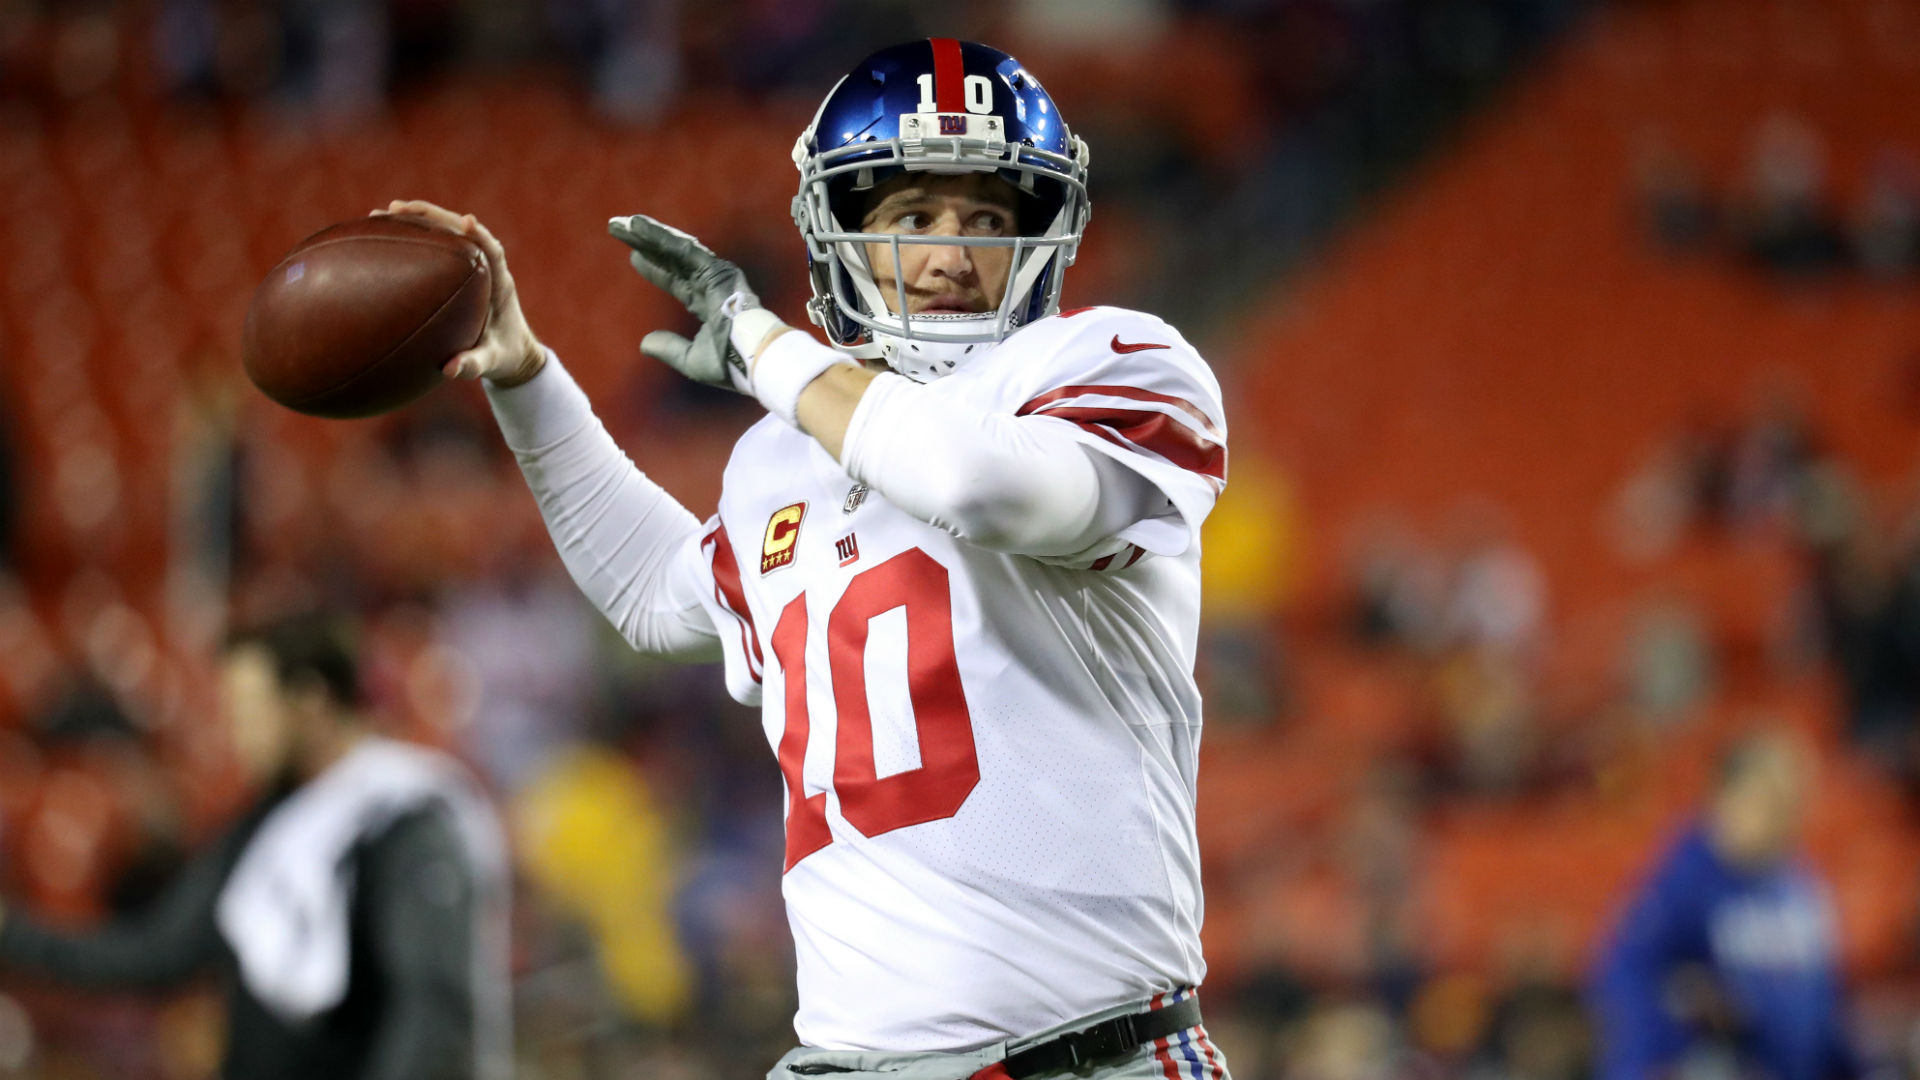 Eli Manning trade rumors: Giants QB 'has no immediate plans to waive' no-trade clause after benching